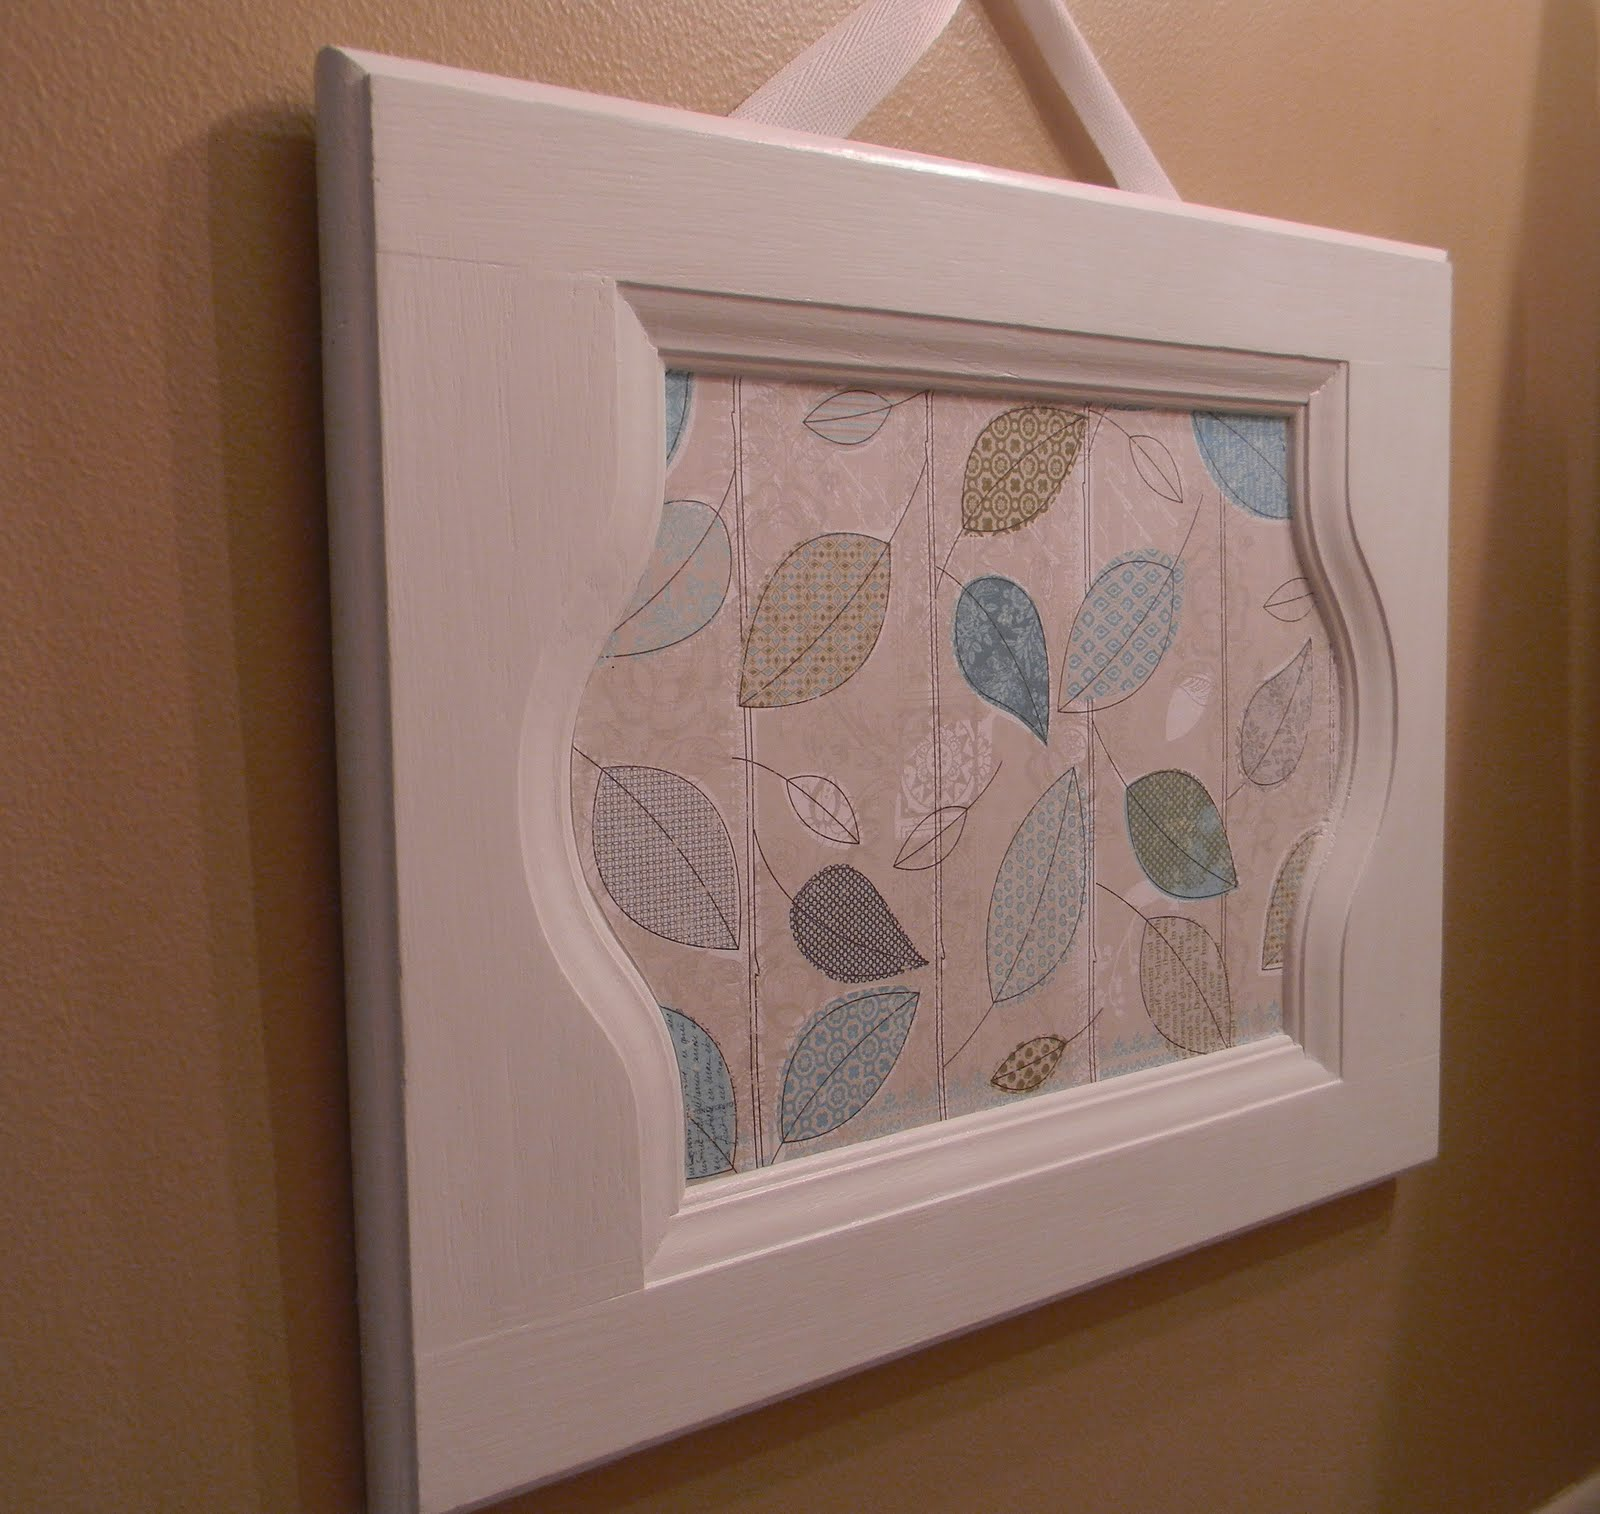 ITS ALL GOOD.: Homemade wall art in our updated bathroom!